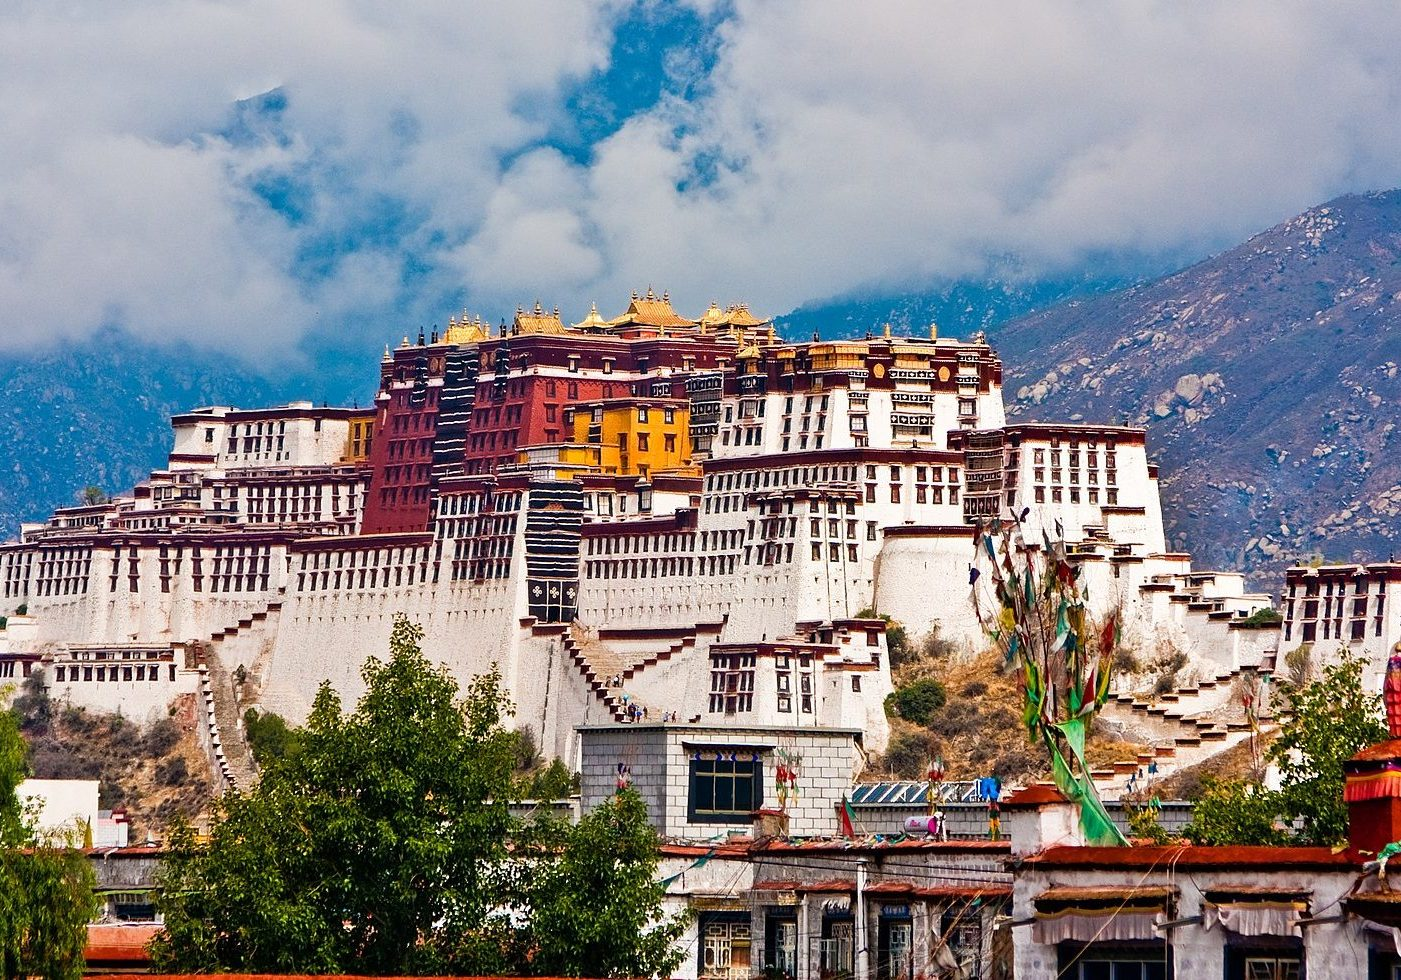 Potala Palace in Lhasa, Tibet. (Photo credit: Antoine Taveneaux/Wikimedia Commons)